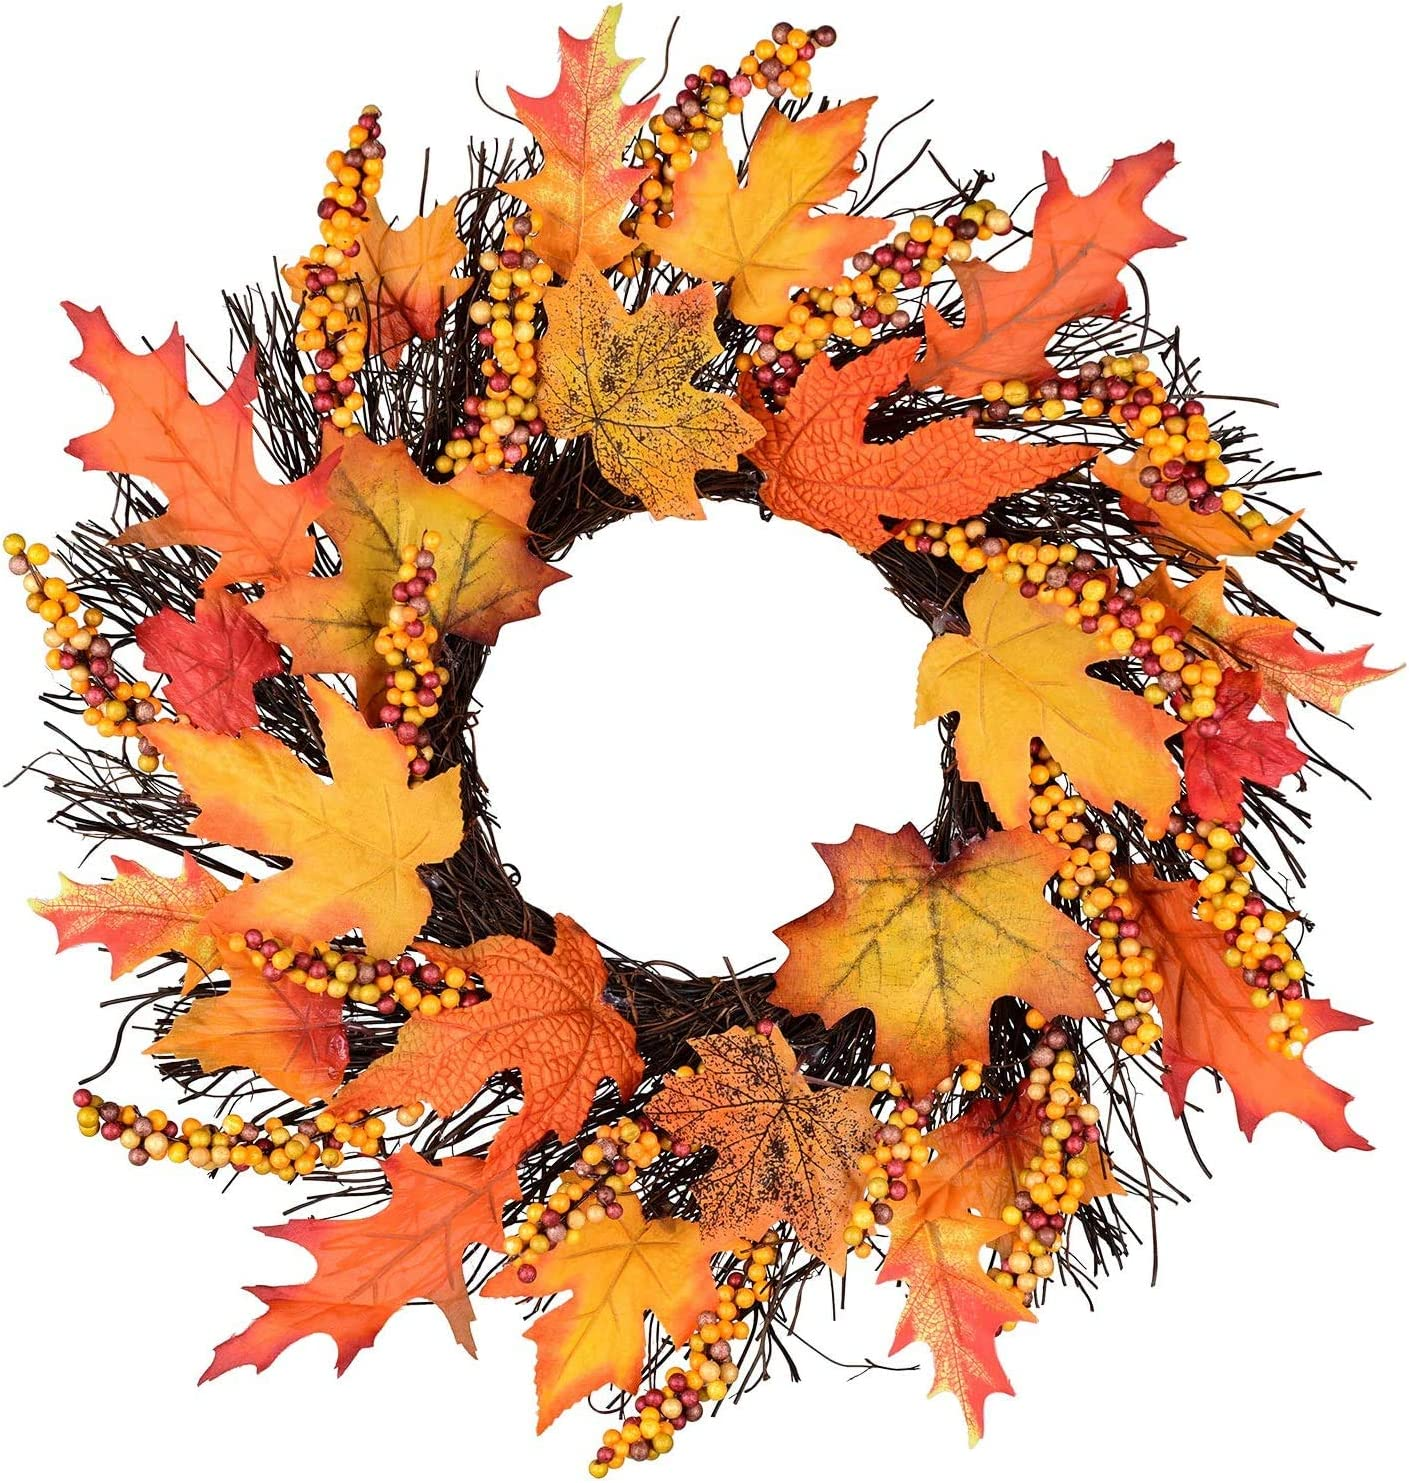 Silk Fall Front Door Wreath -17 Inches Large Fall Wreath, Maple Leafs, Berries and Pumpkin Harvest Artificial Wreath, Brightens Front Door Decor with Rich Fall Colors